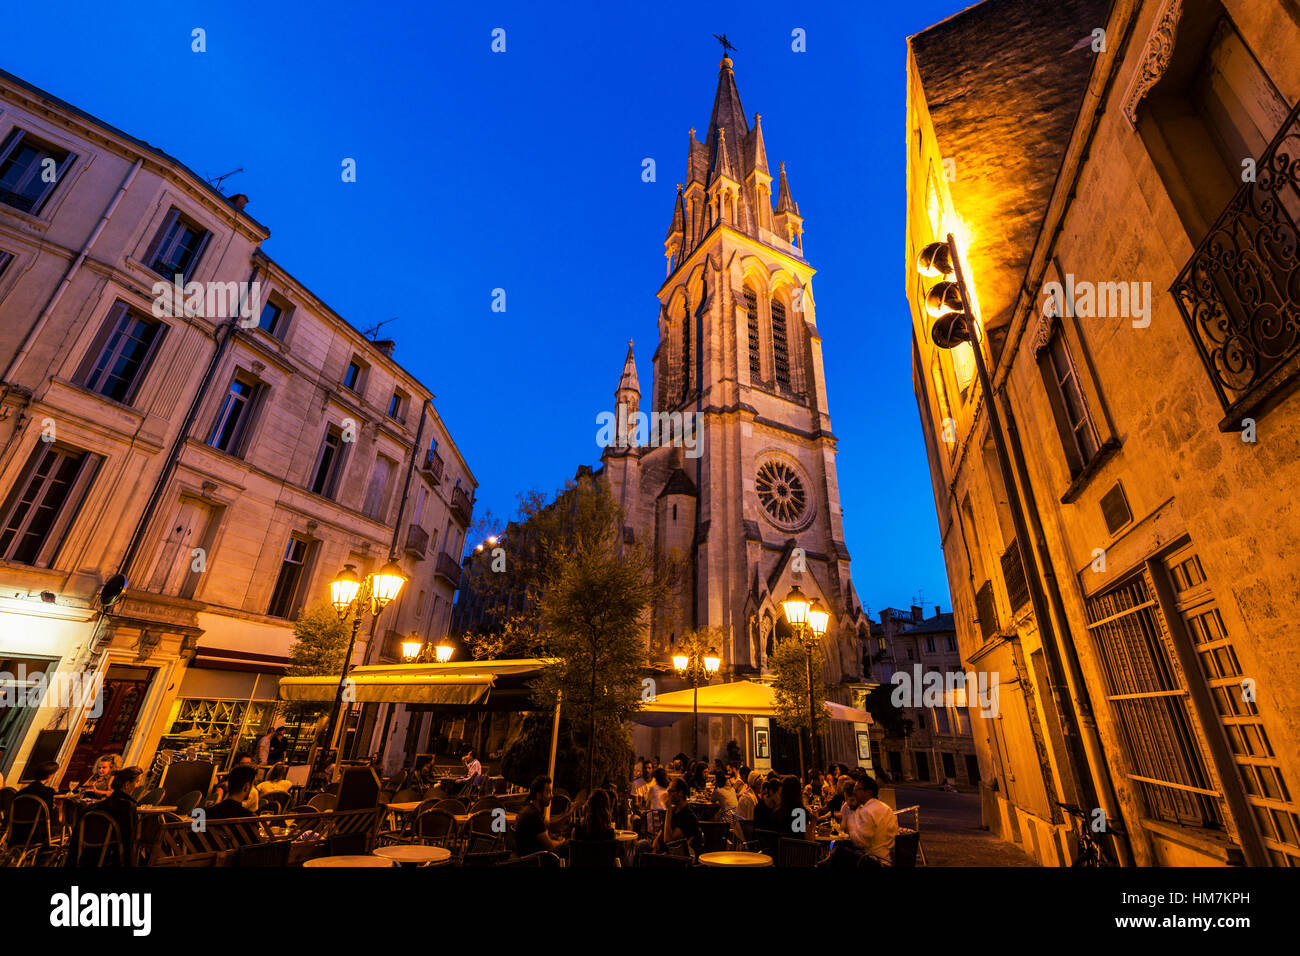 France, Occitanie, Montpellier, Sidewalk cafe and St. Anne Church at dusk - Stock Image